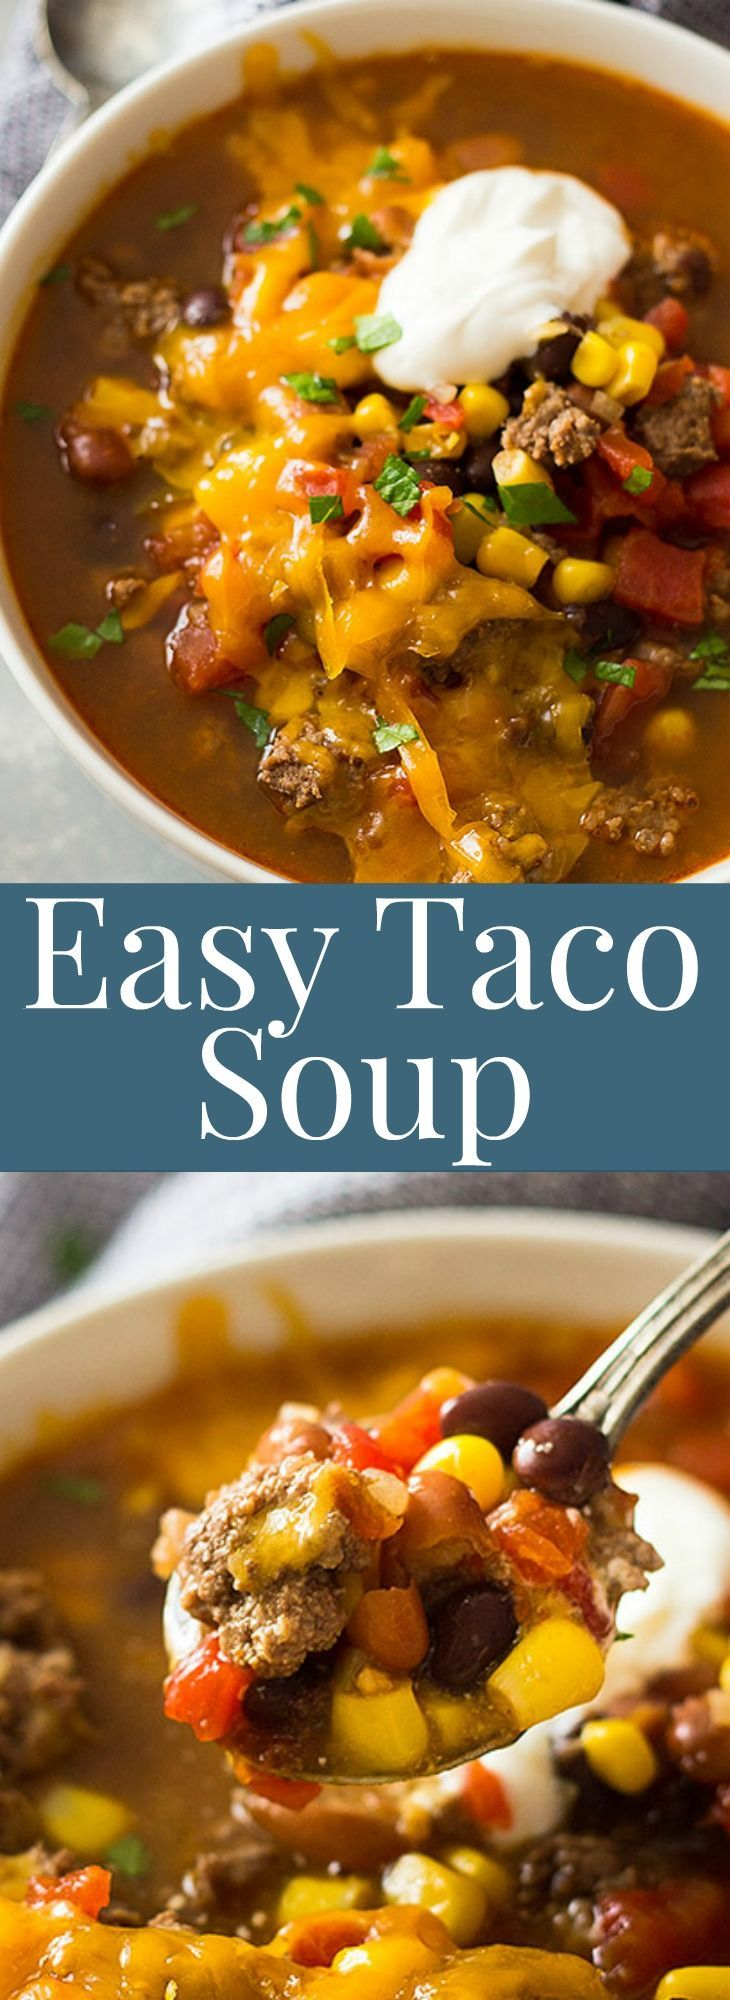 This Easy Taco Soup is packed with flavor, takes less than 30 minutes to make and there is a slow cooker version!   www.countrysidecravings.com